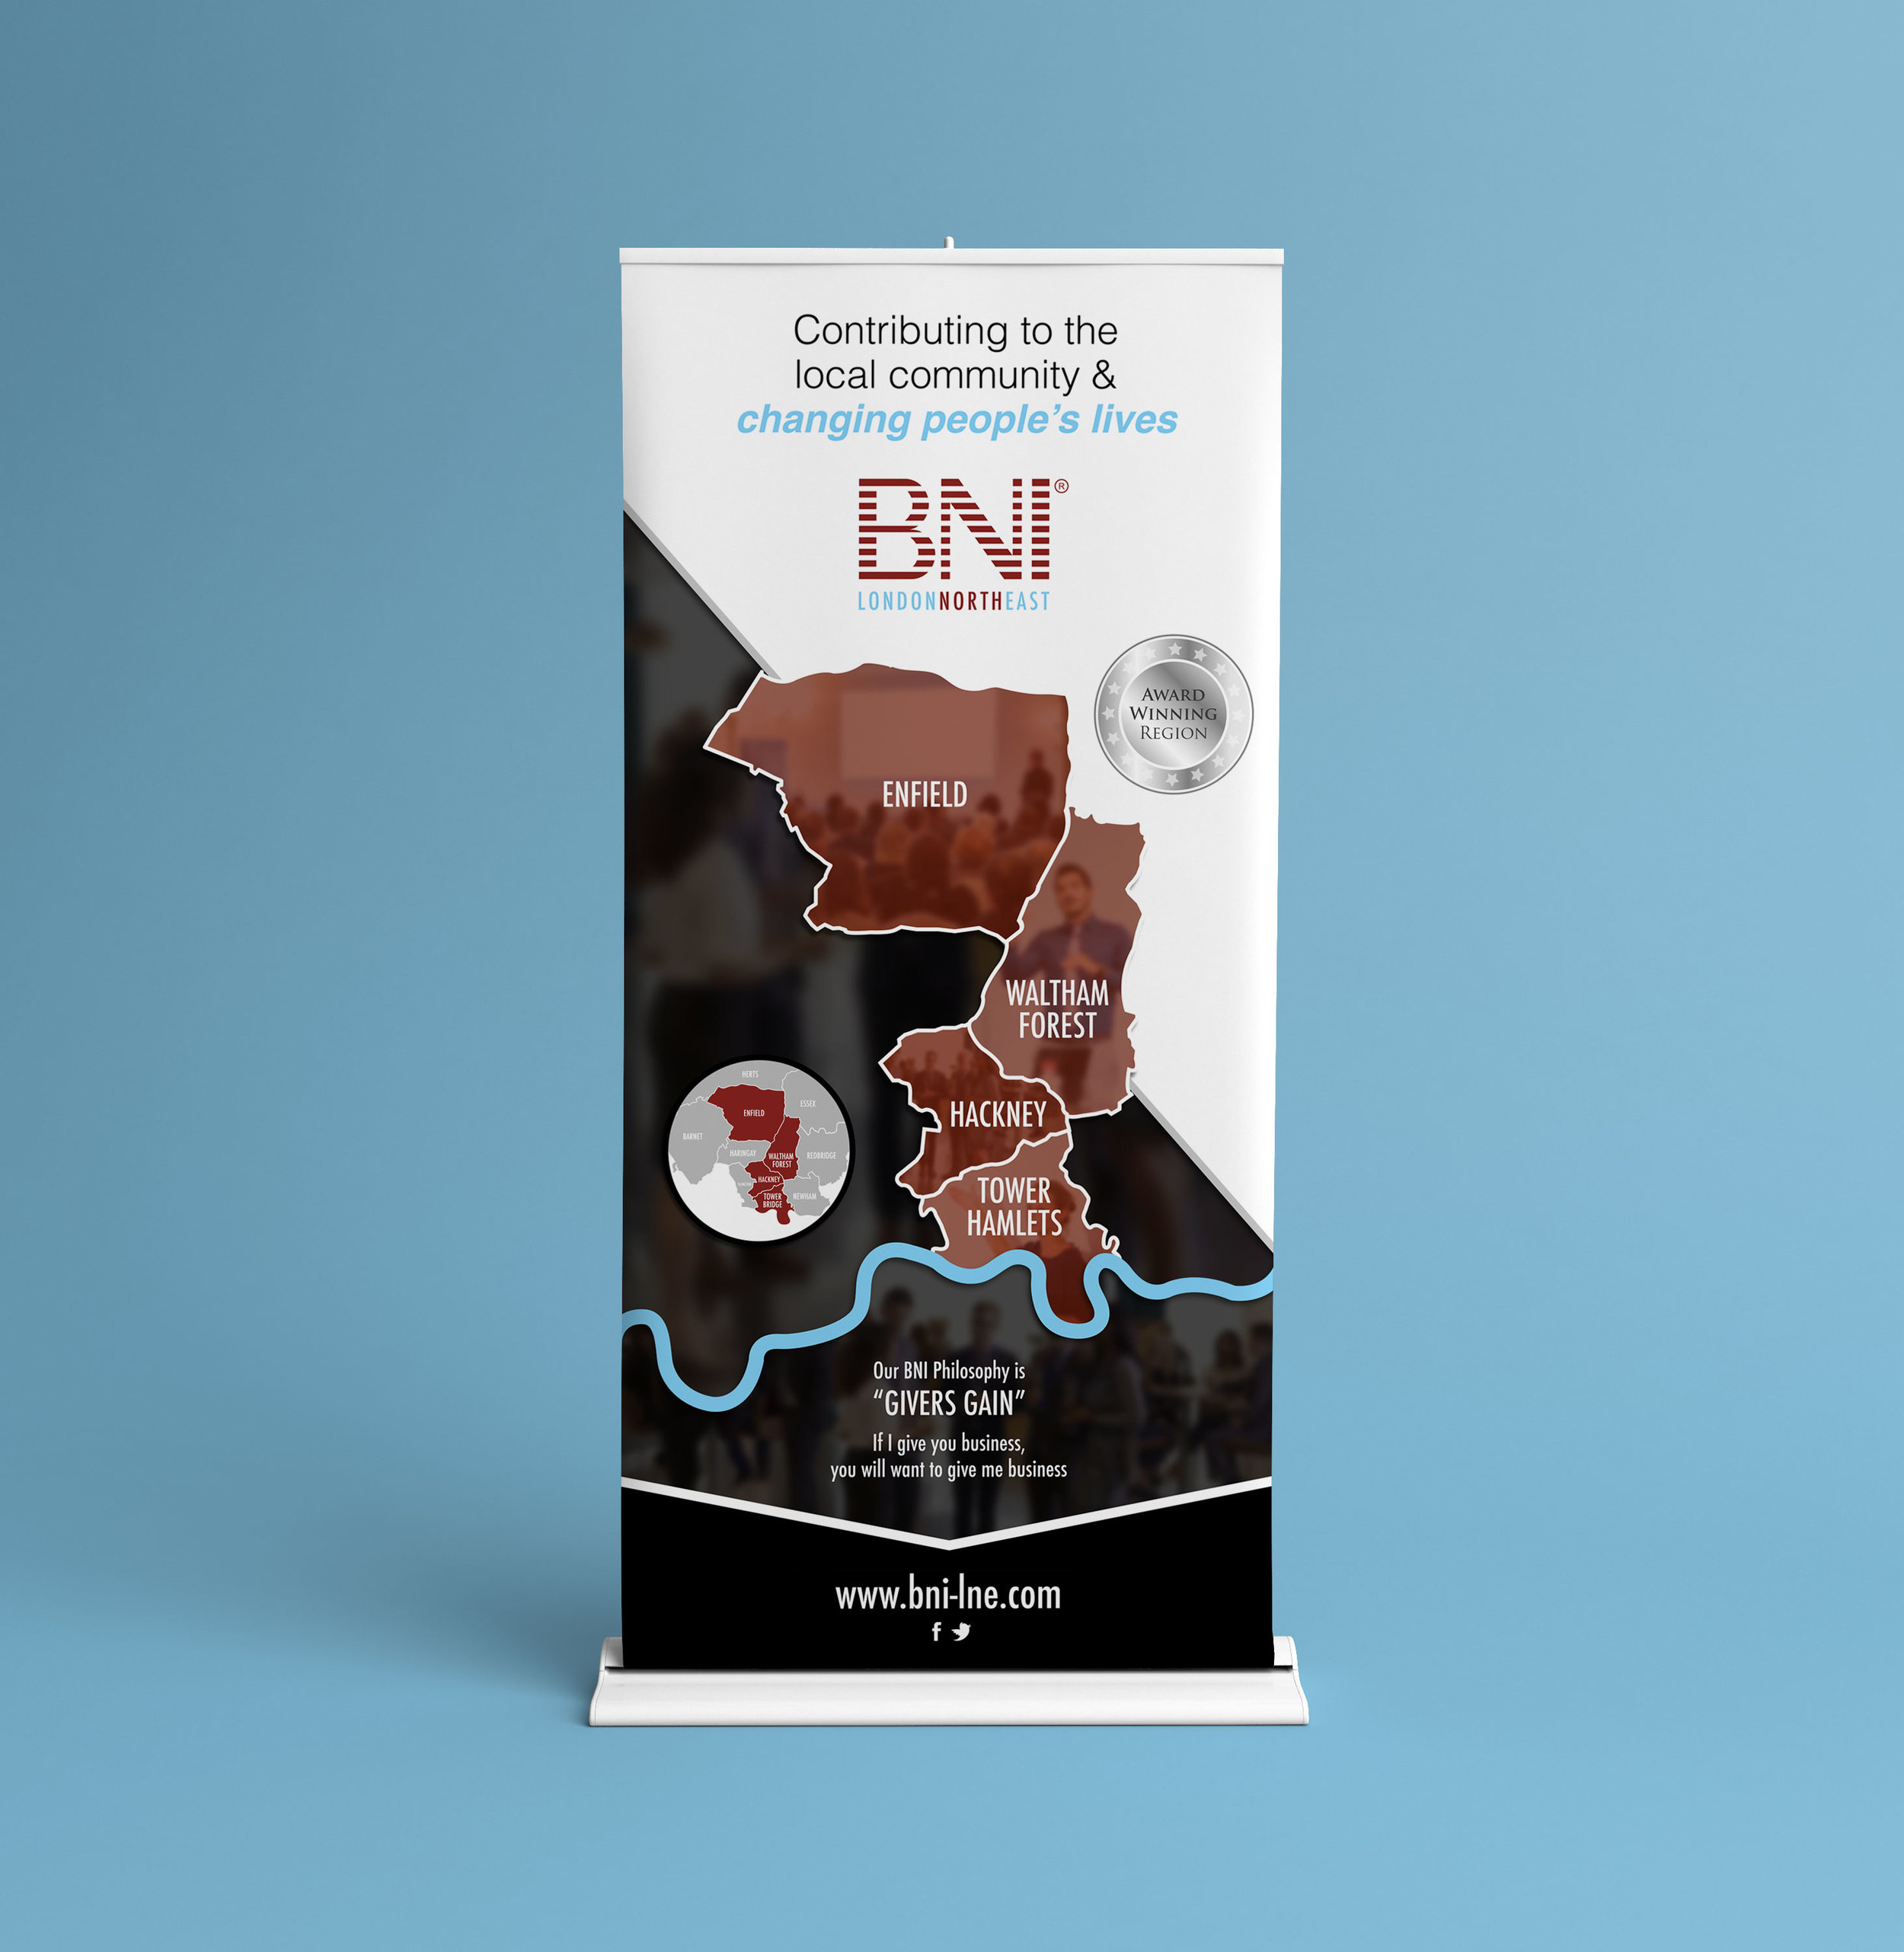 bni-lne-roll-up-banner.jpg